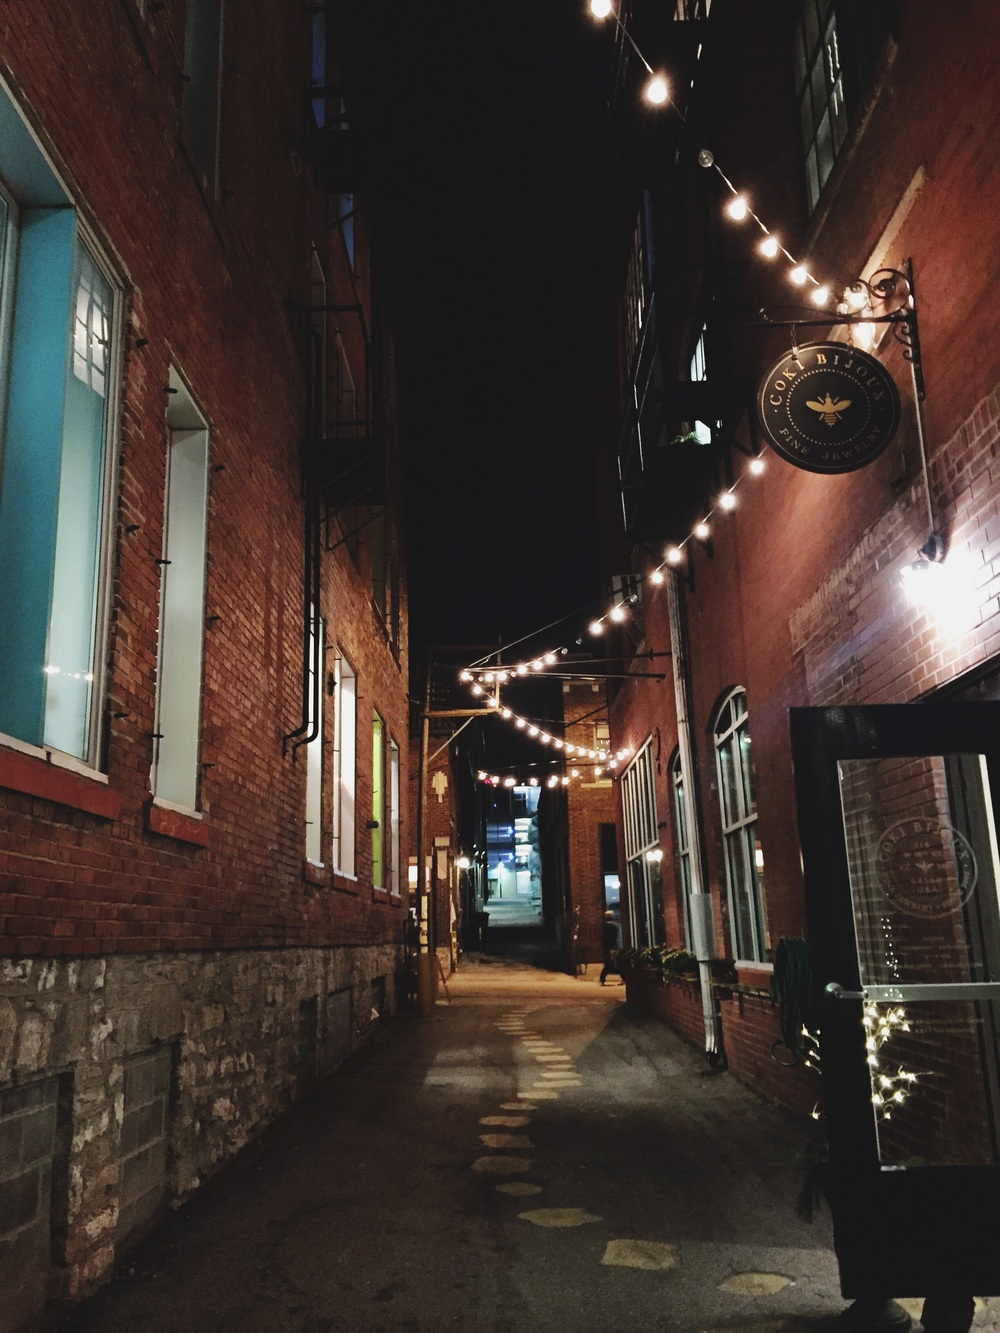 Ended the night at The Bauer! The alley is lit up and magical as always.